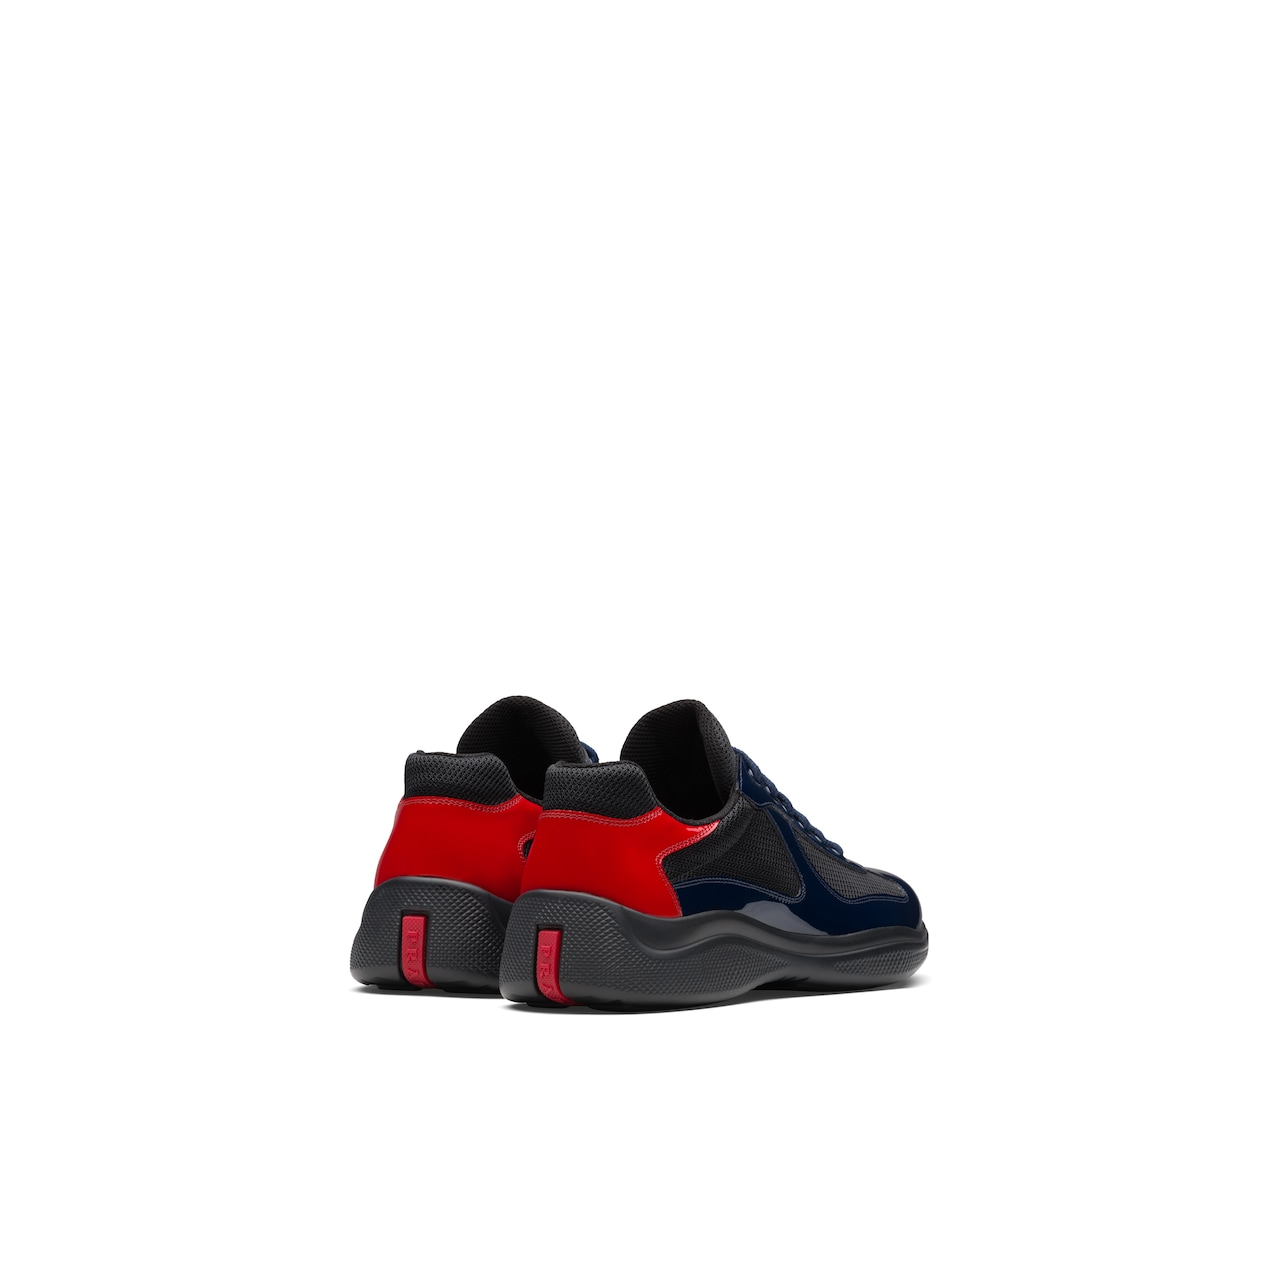 Prada America's Cup patent leather and nylon sneakers 5